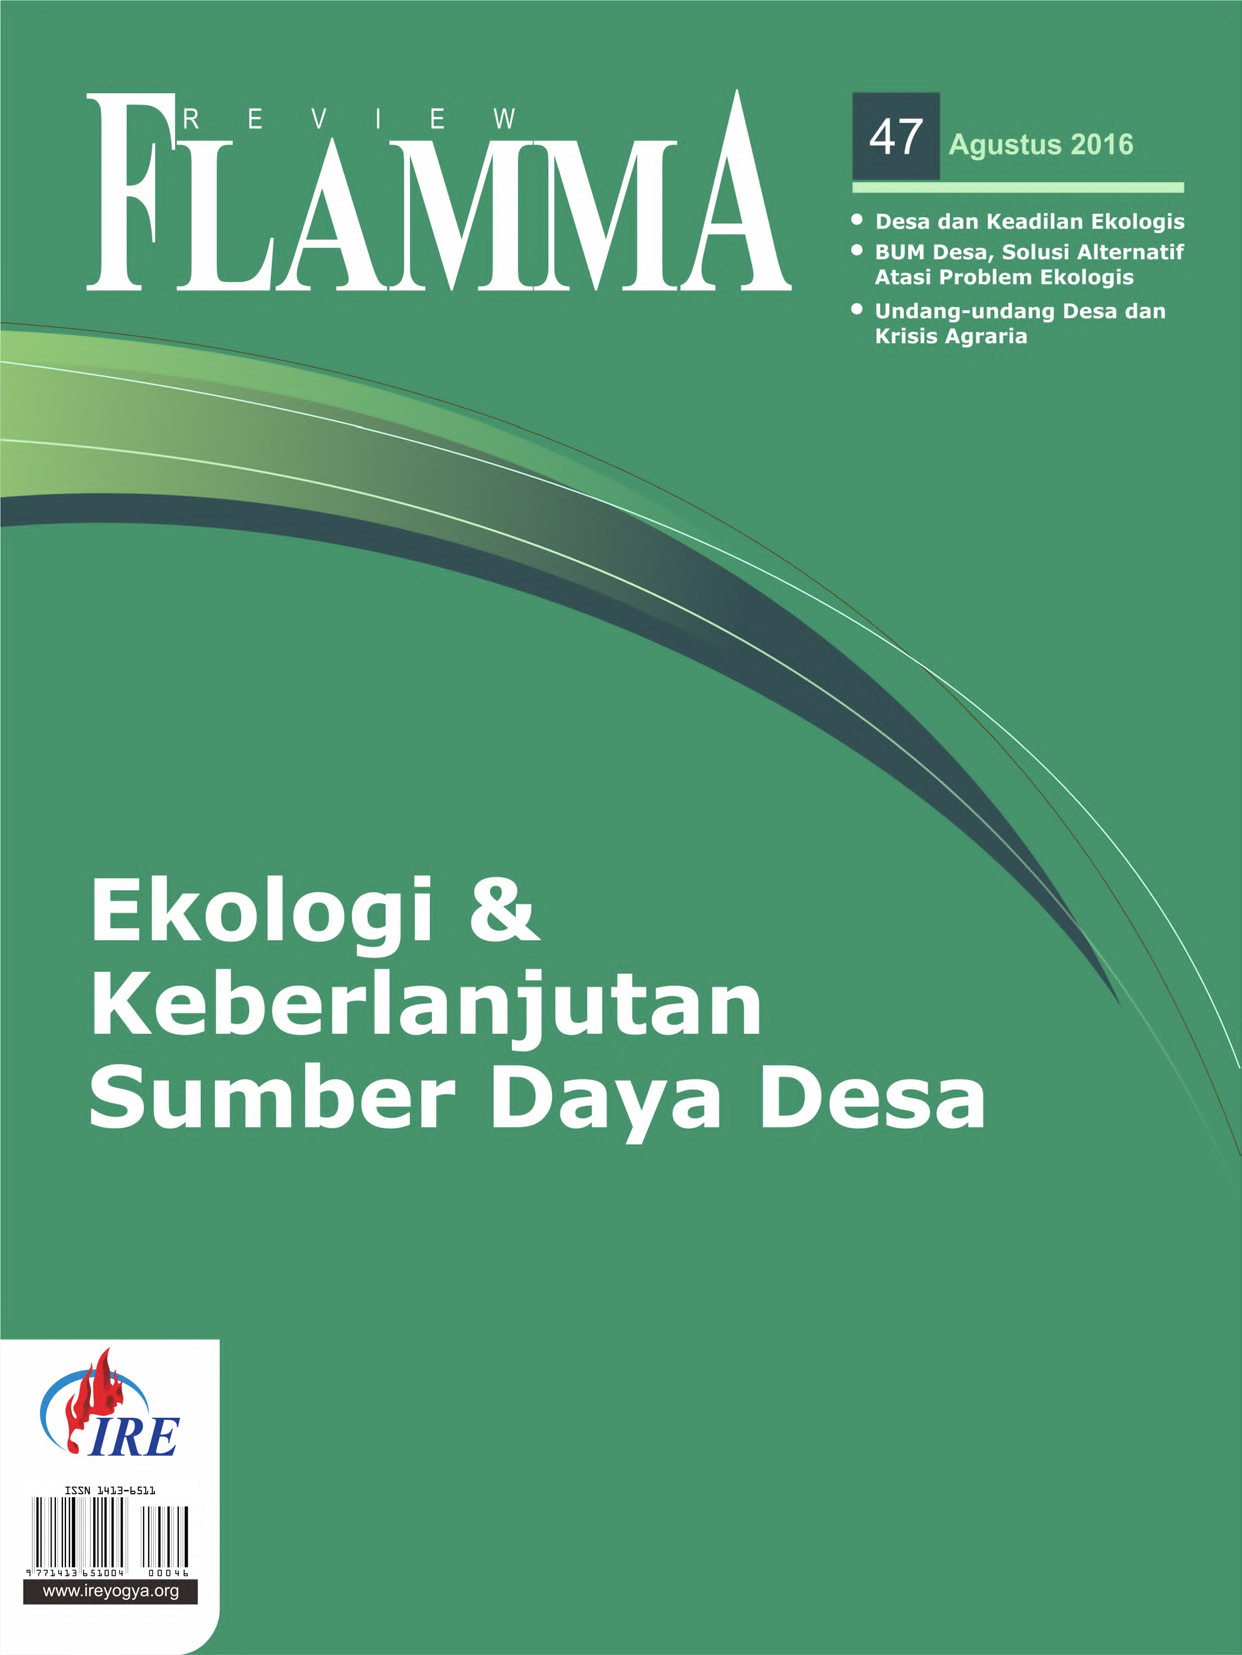 Flamma Review 47